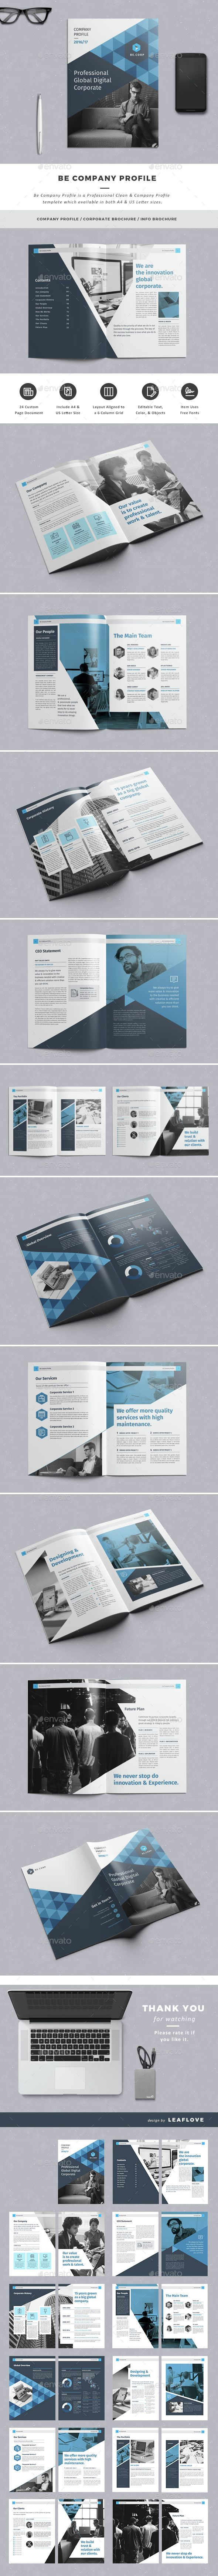 Be Company Profile - InDesign Template • Only available here! →…